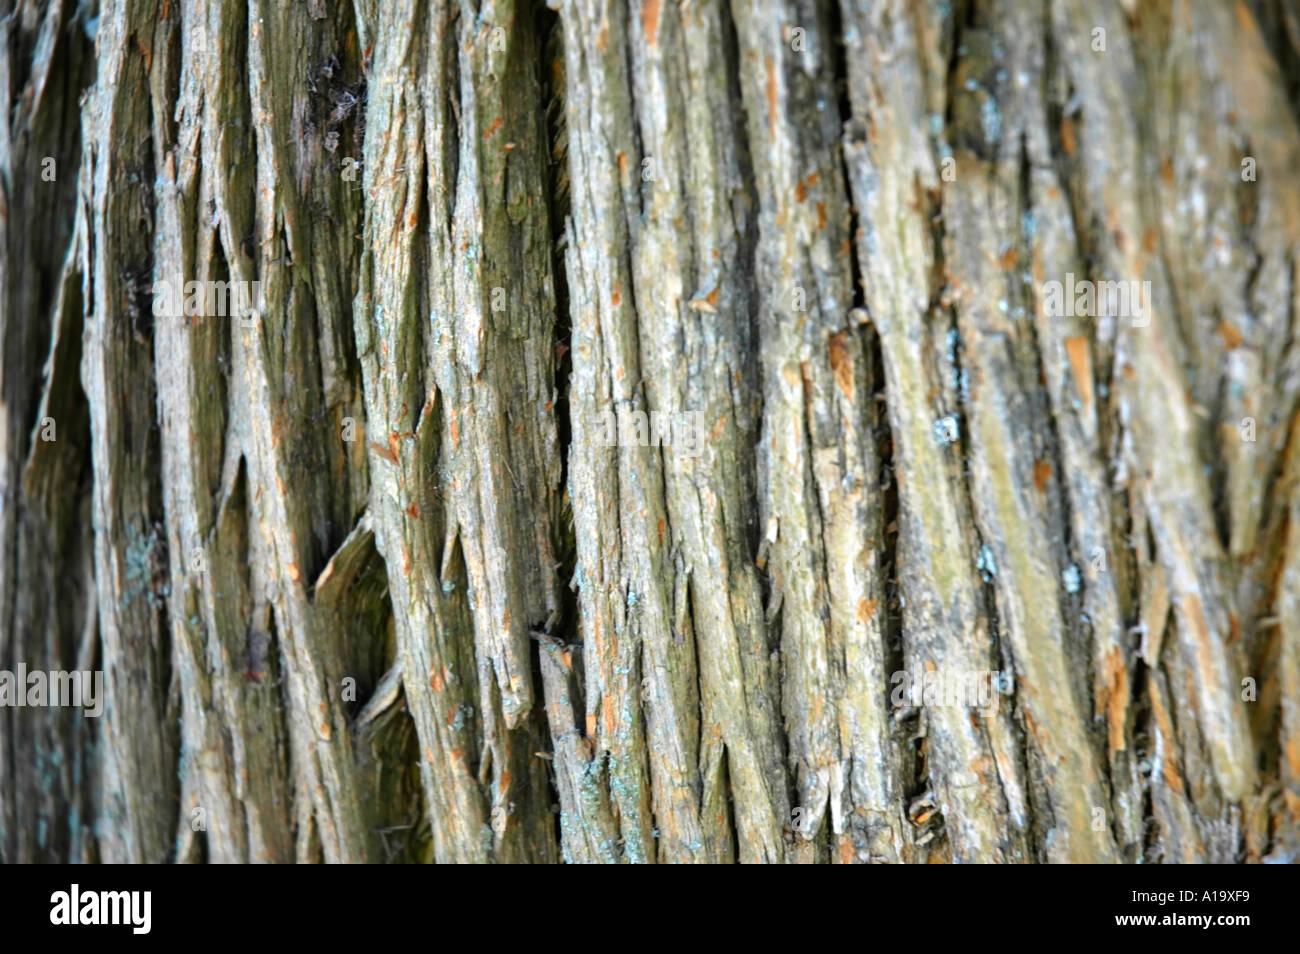 Deeply Furrowed Bark Of An Osage Orange Tree Stock Photo ...